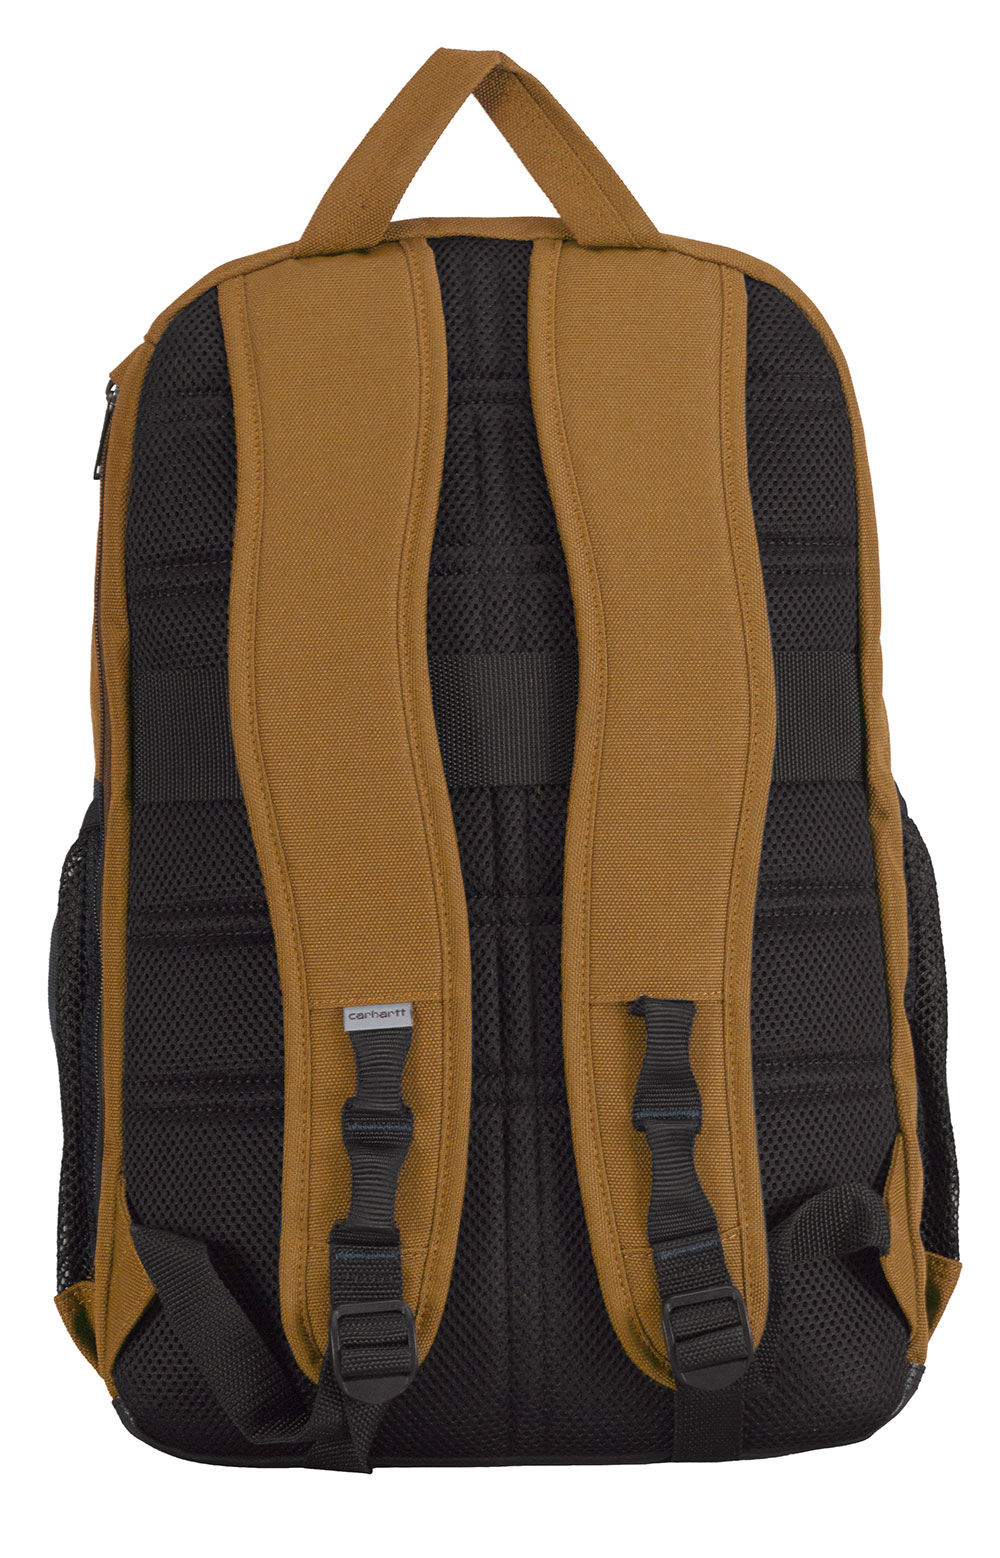 Force Advanced 28L Laptop Backpack - Carhartt Brown  2